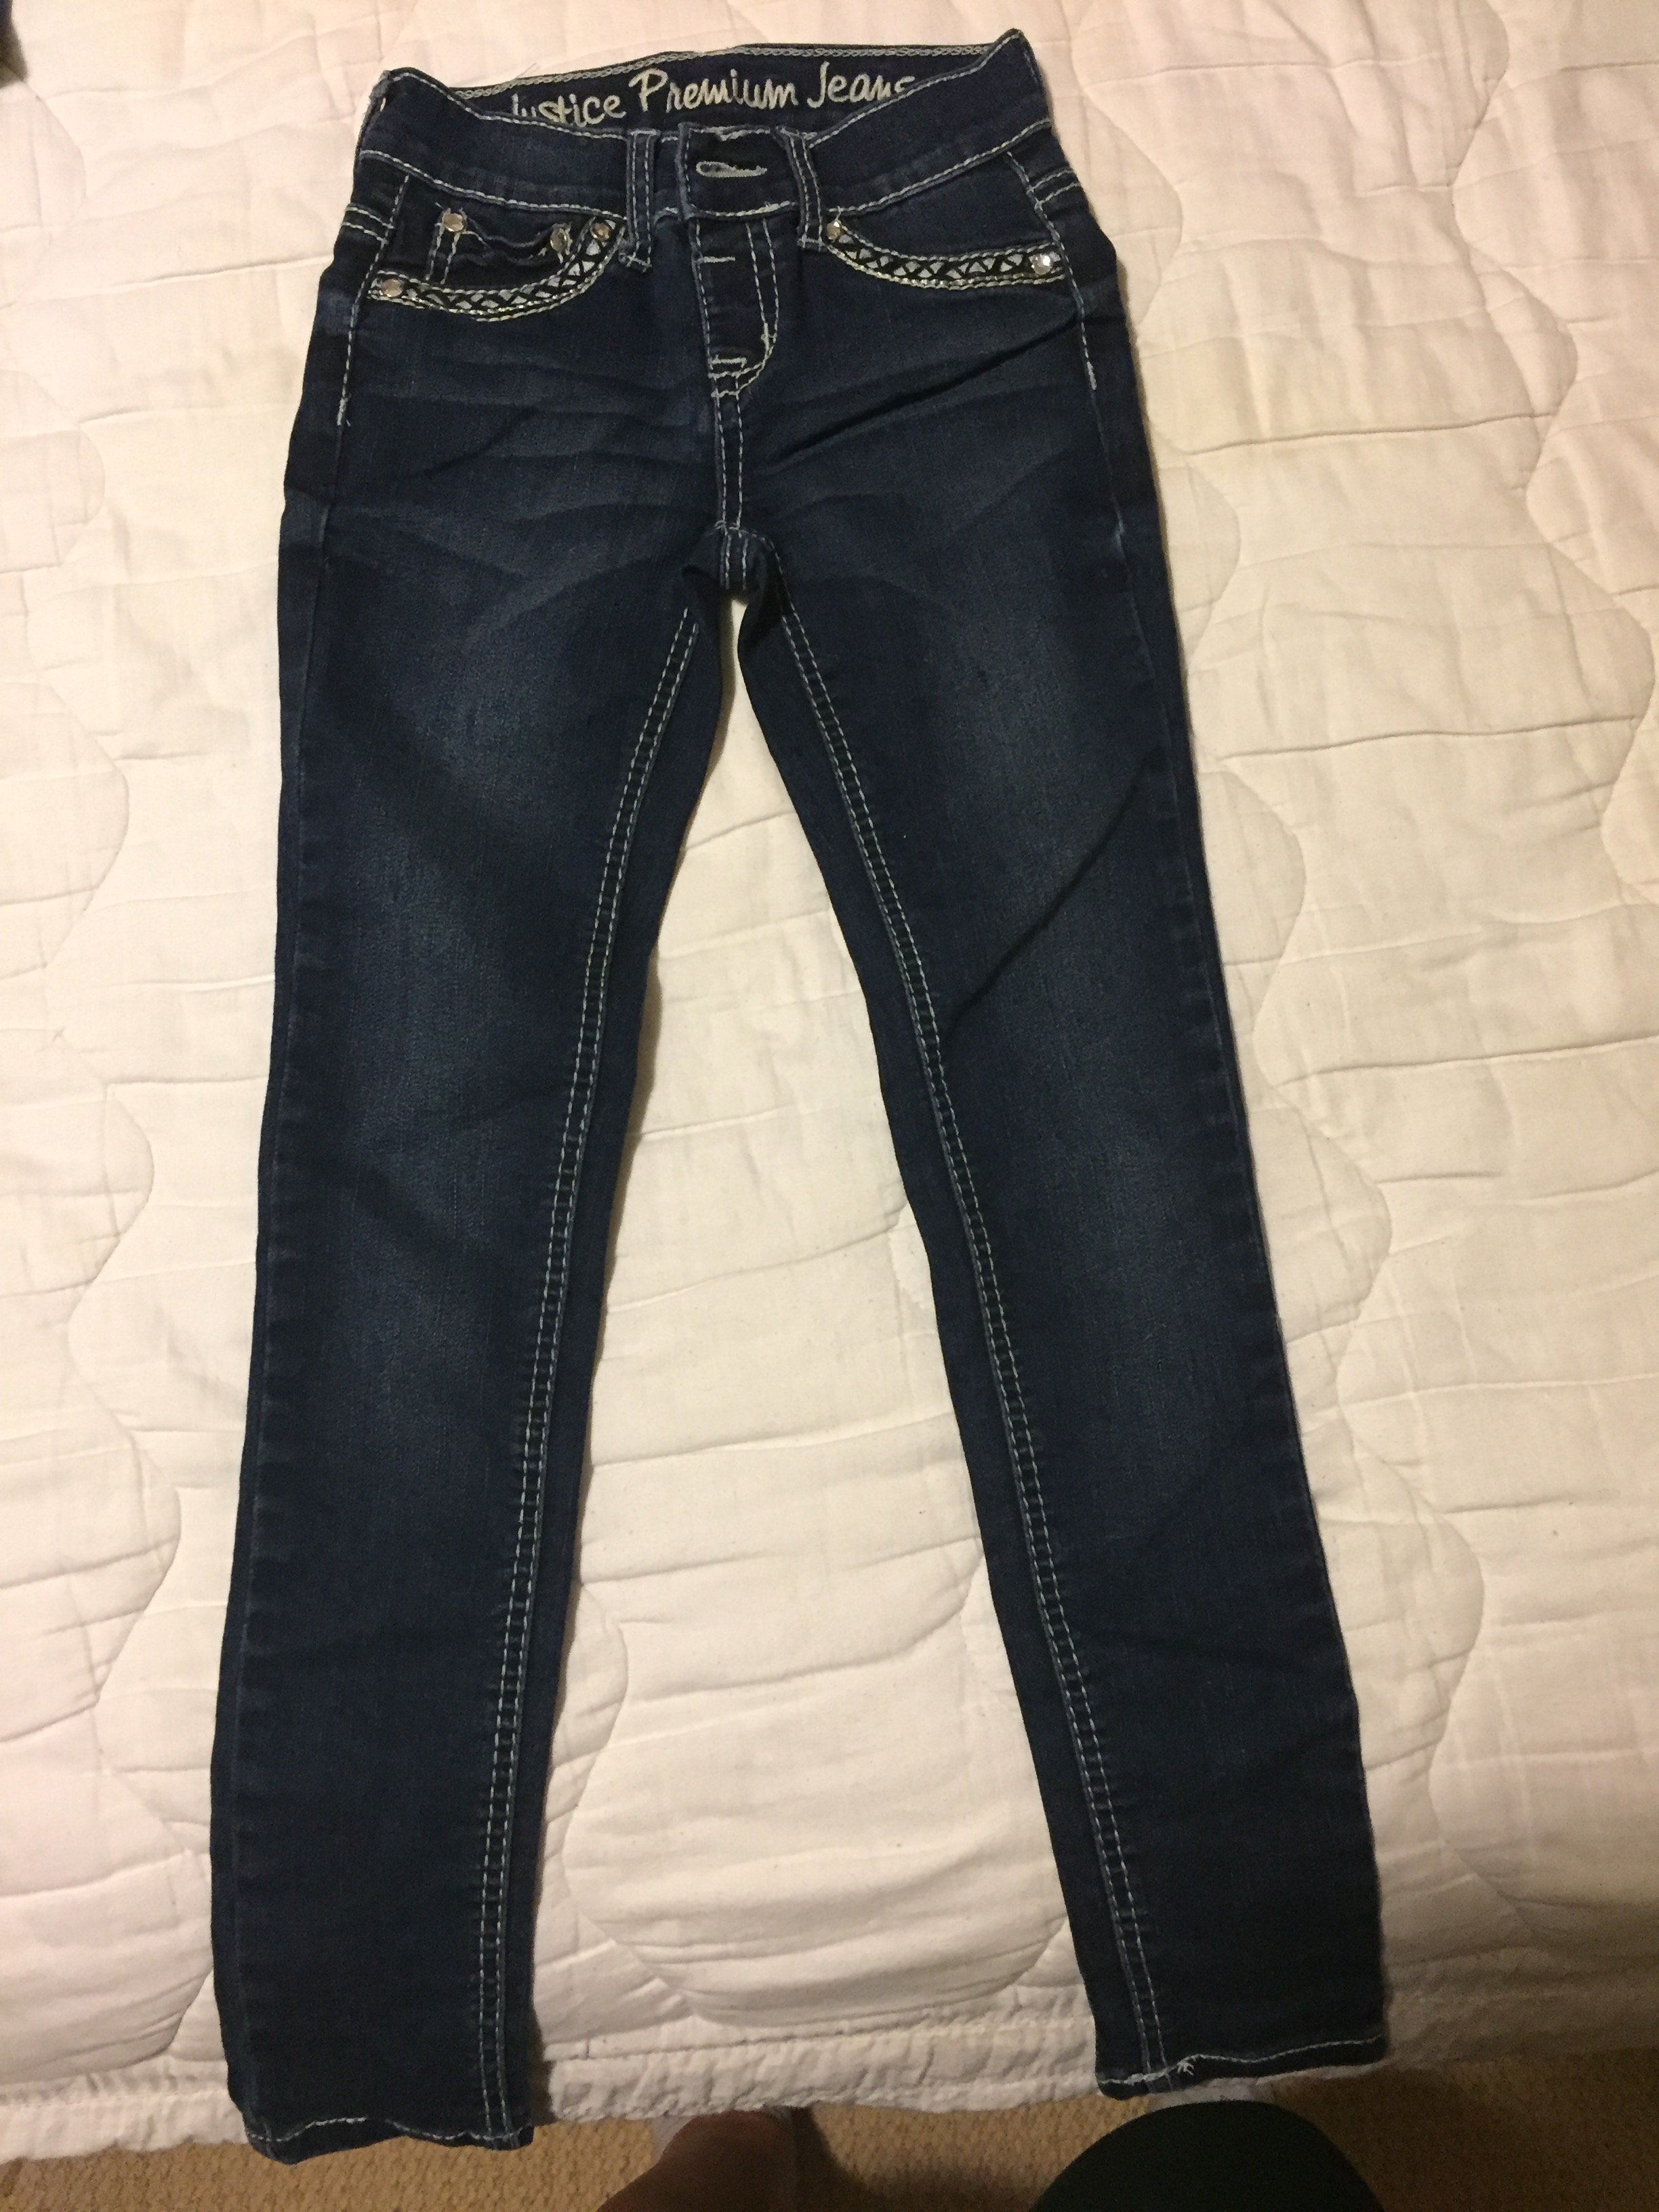 Justice - Jeans Simply Low - Girls Size 10S